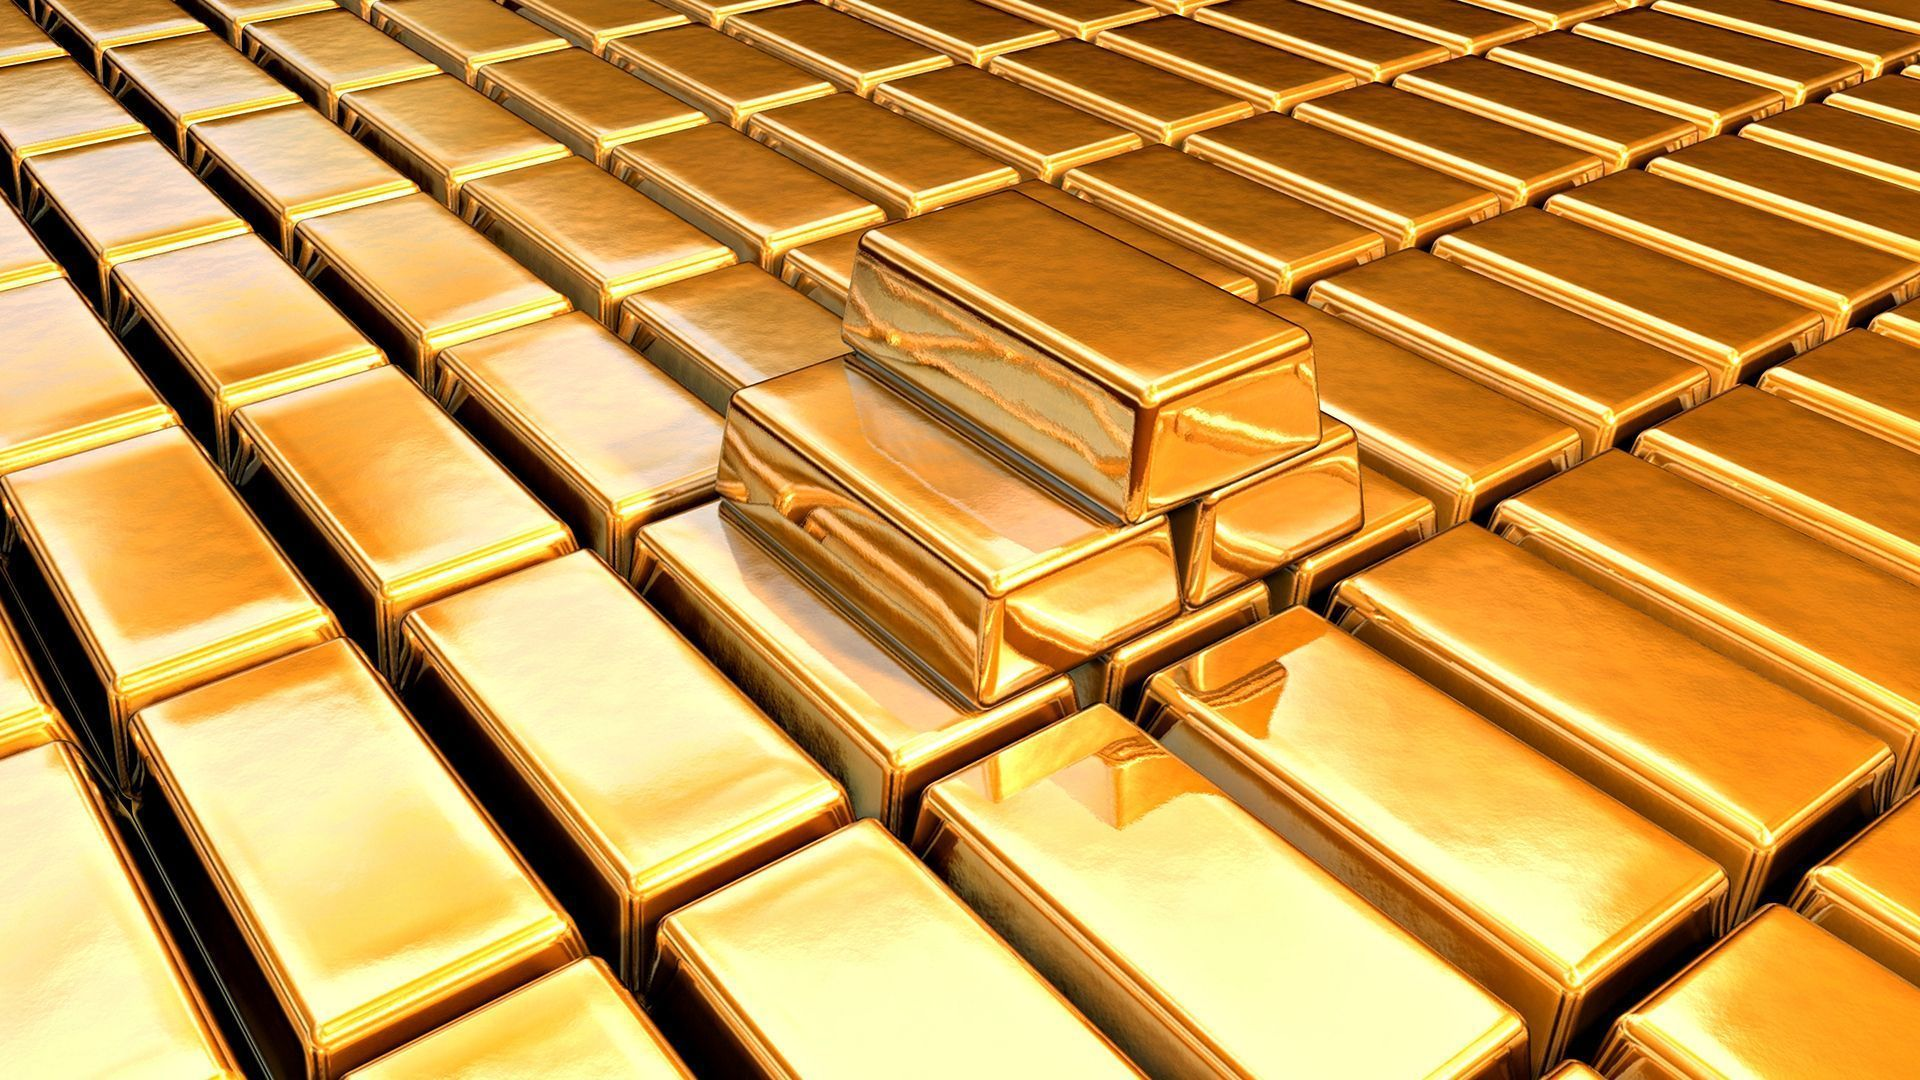 Gold Money Gallery 560714206 Wallpaper for Free Nice High